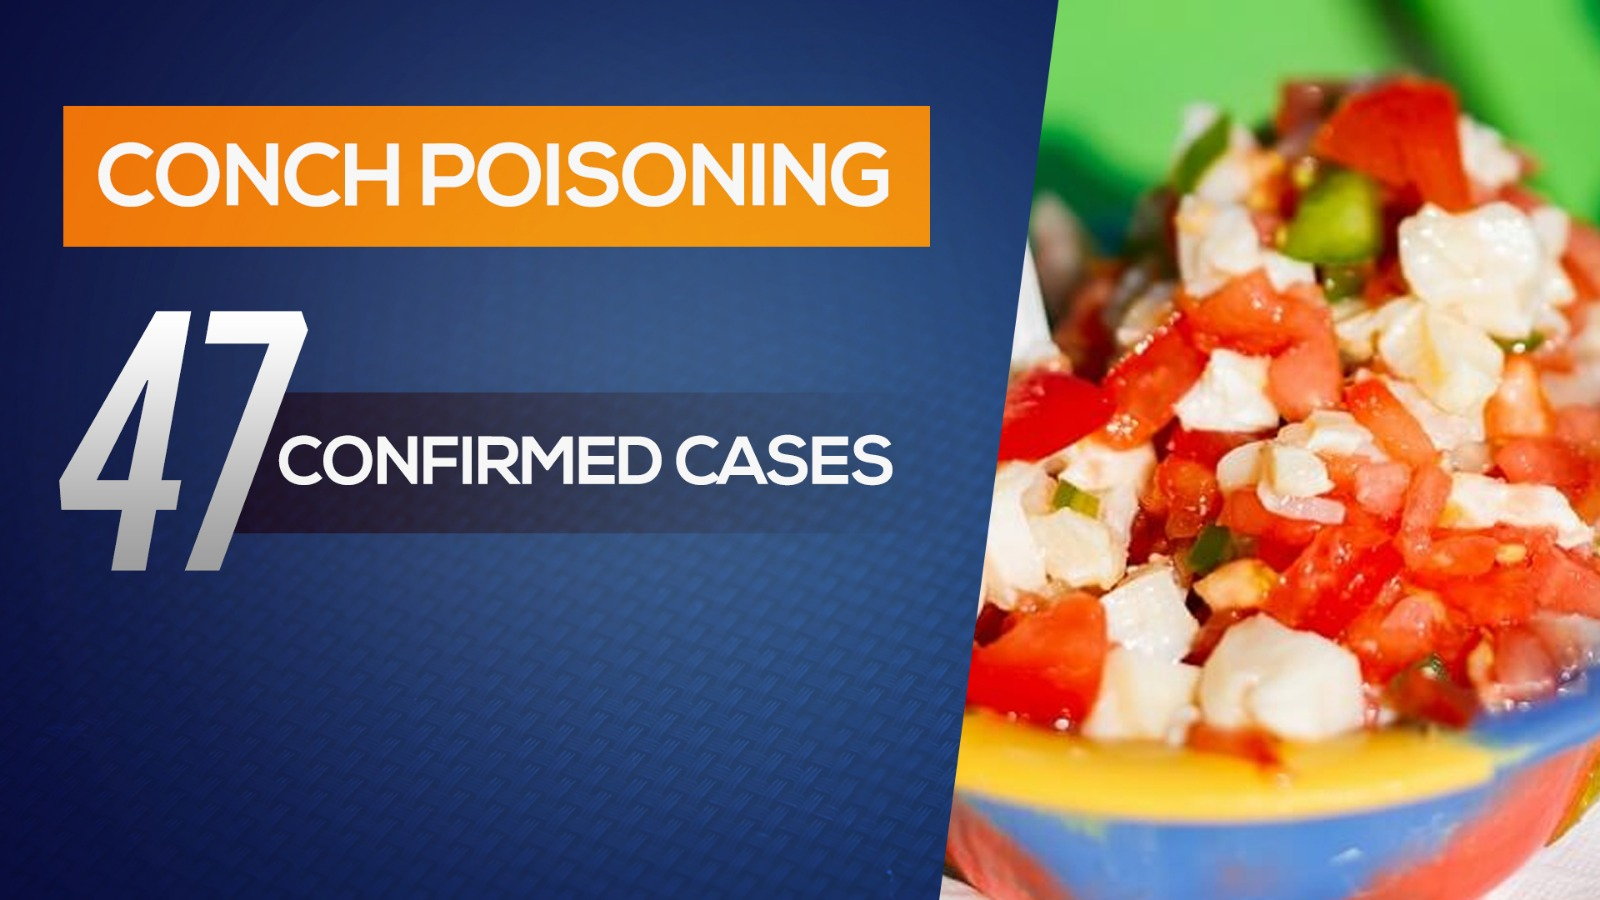 Conch poisoning cases continue to climb